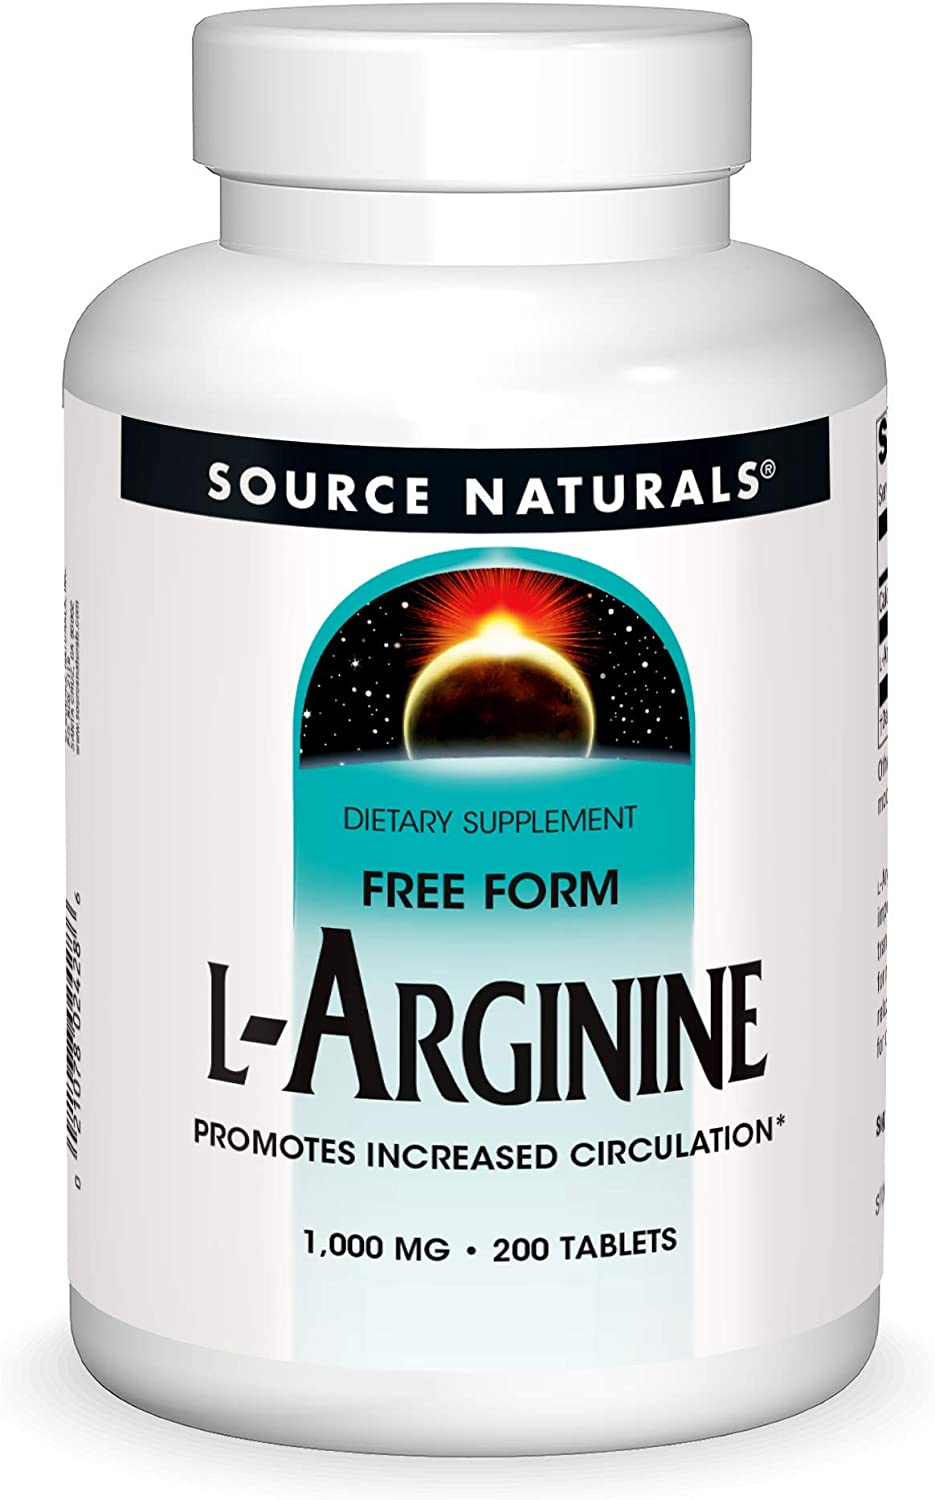 Source Naturals High order L-Arginine 1000 mg All items free shipping Promotes and Free Increa Form